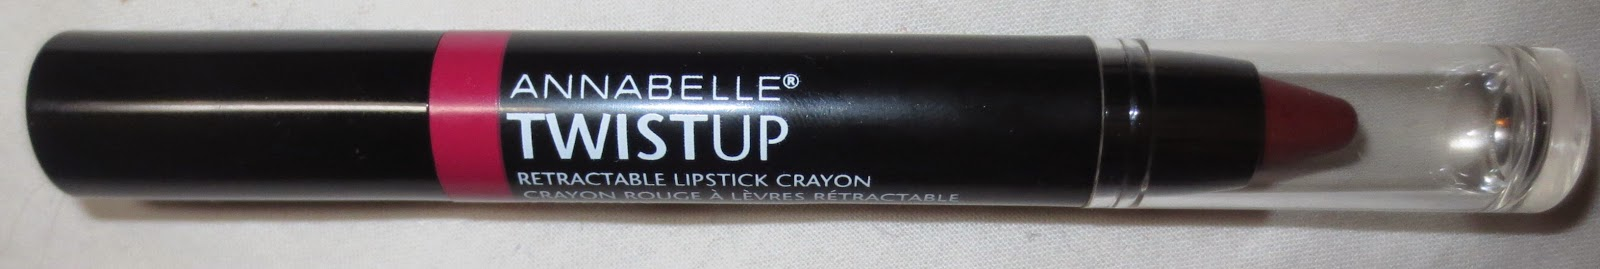 Annabelle TwistUp Retractable Lipstick Crayon in Cherry